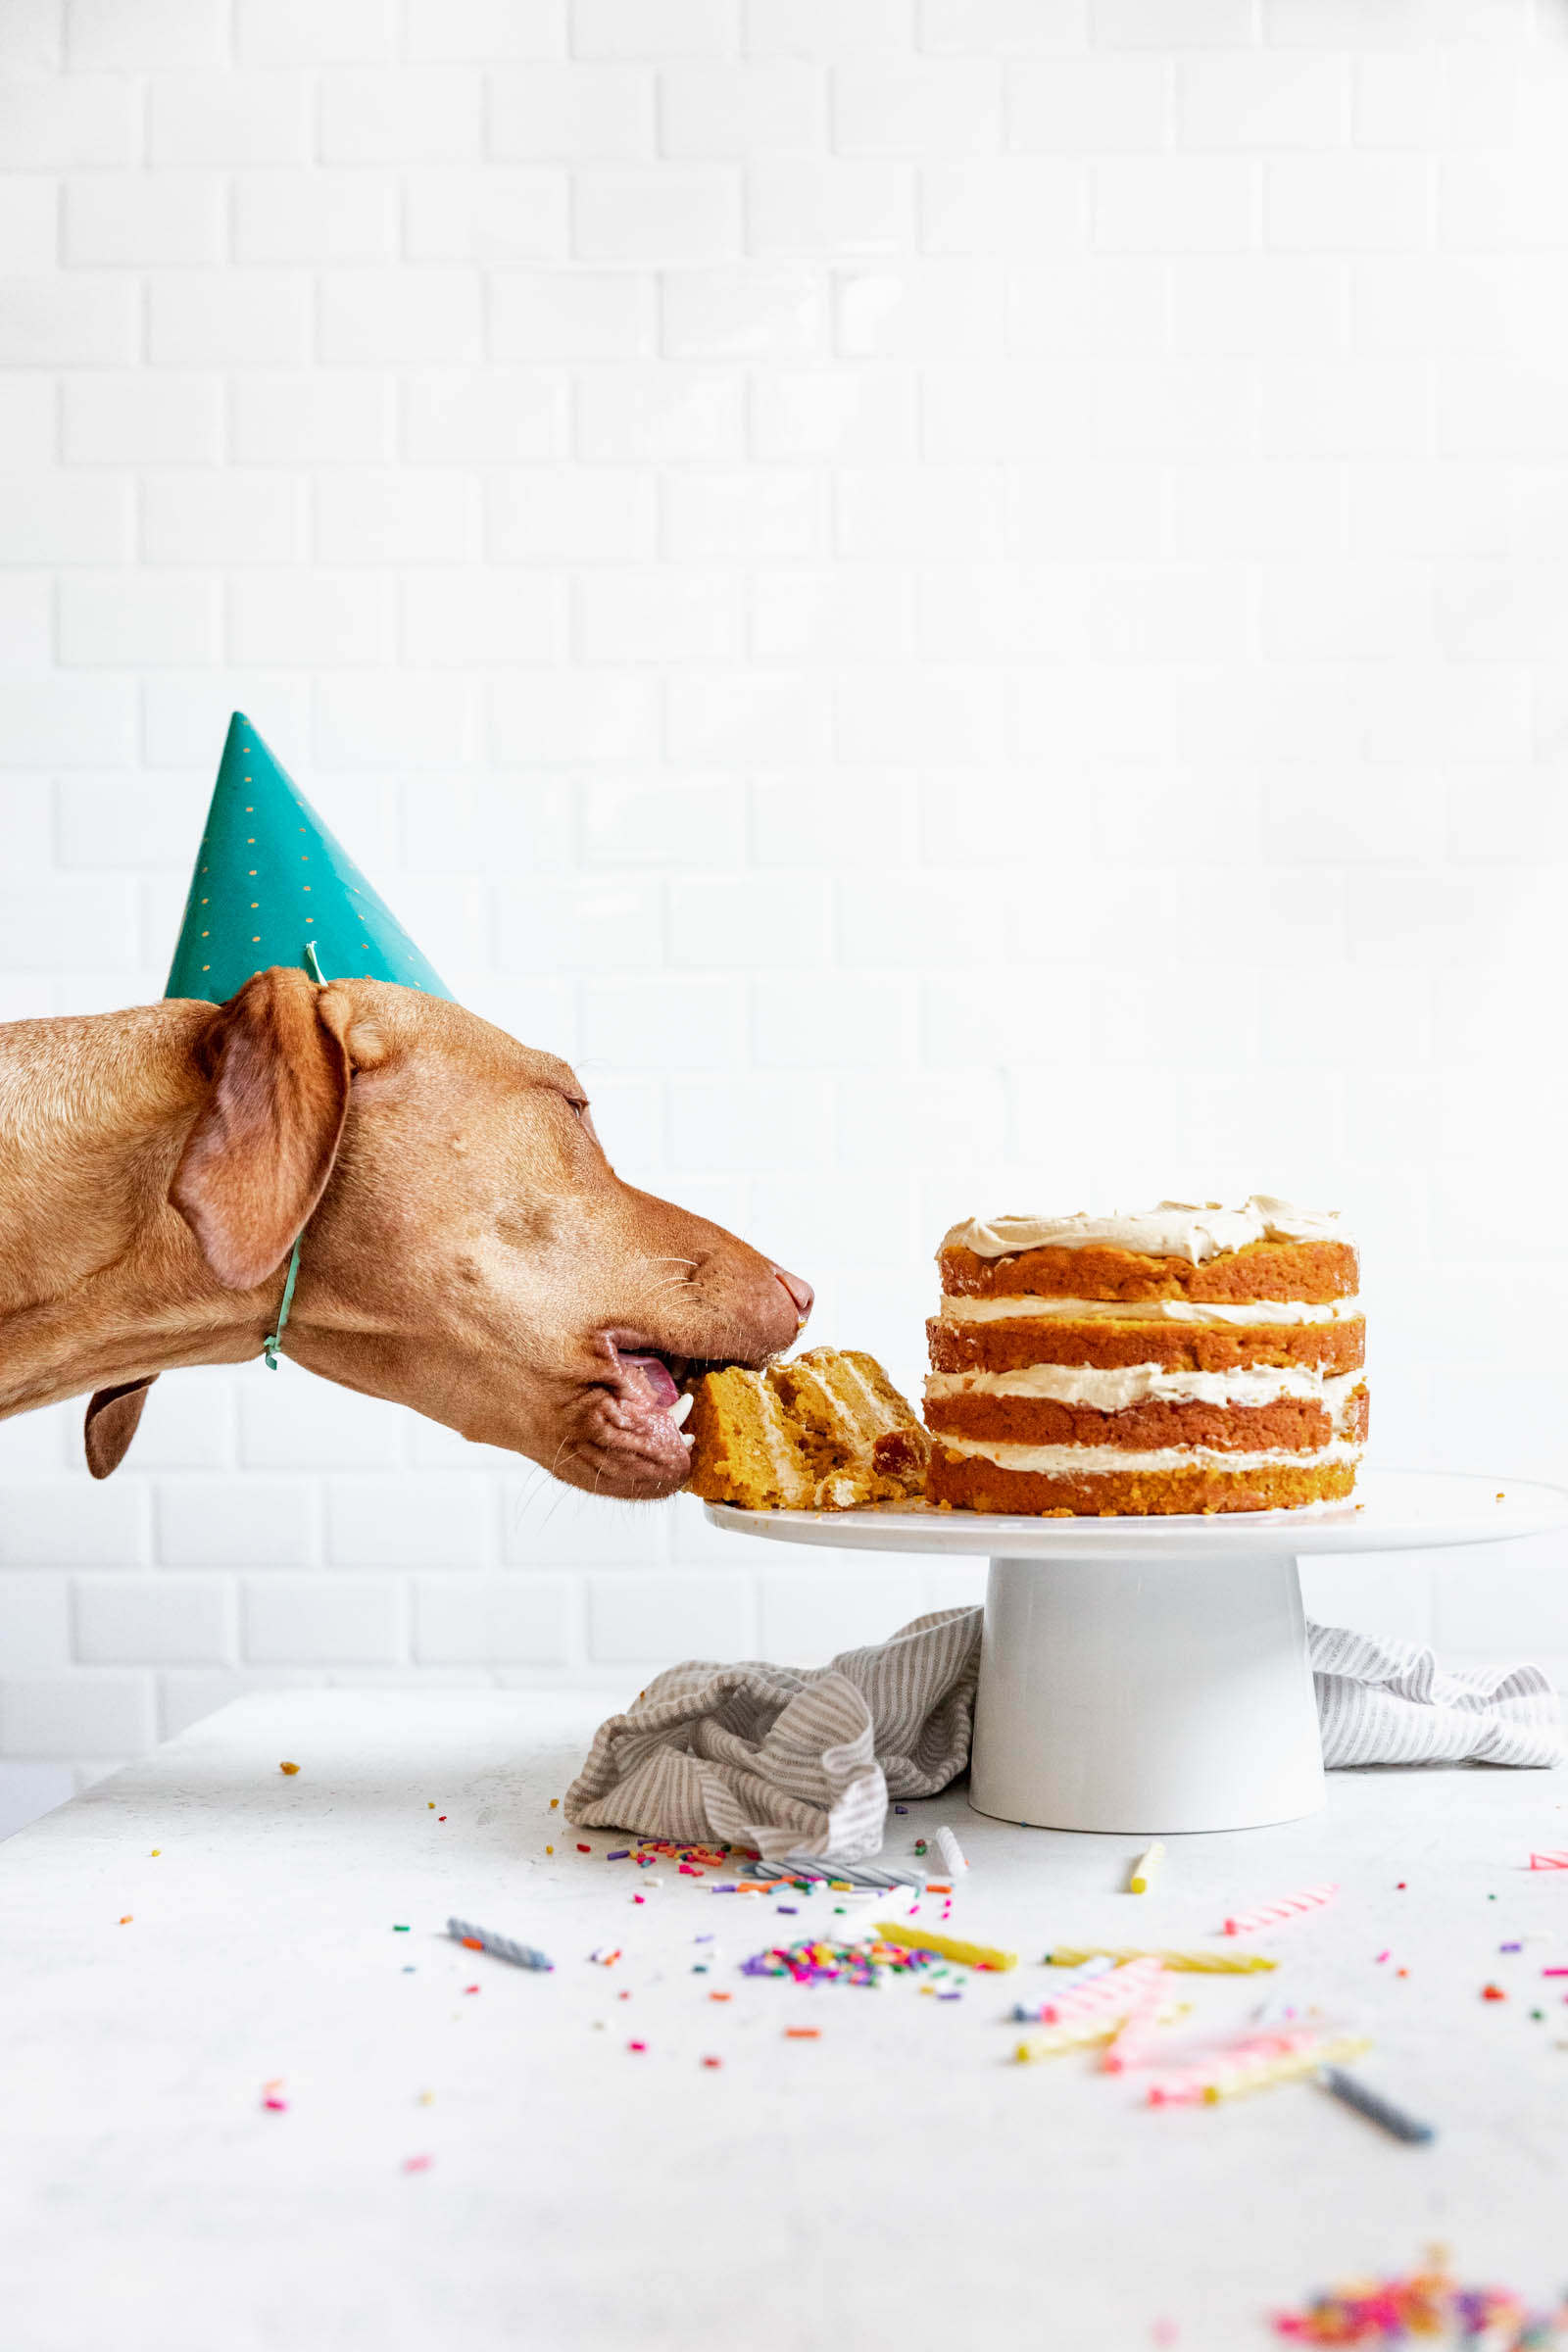 Wondrous Dog Birthday Cake Recipe How To Make Cake For Your Dog Funny Birthday Cards Online Chimdamsfinfo